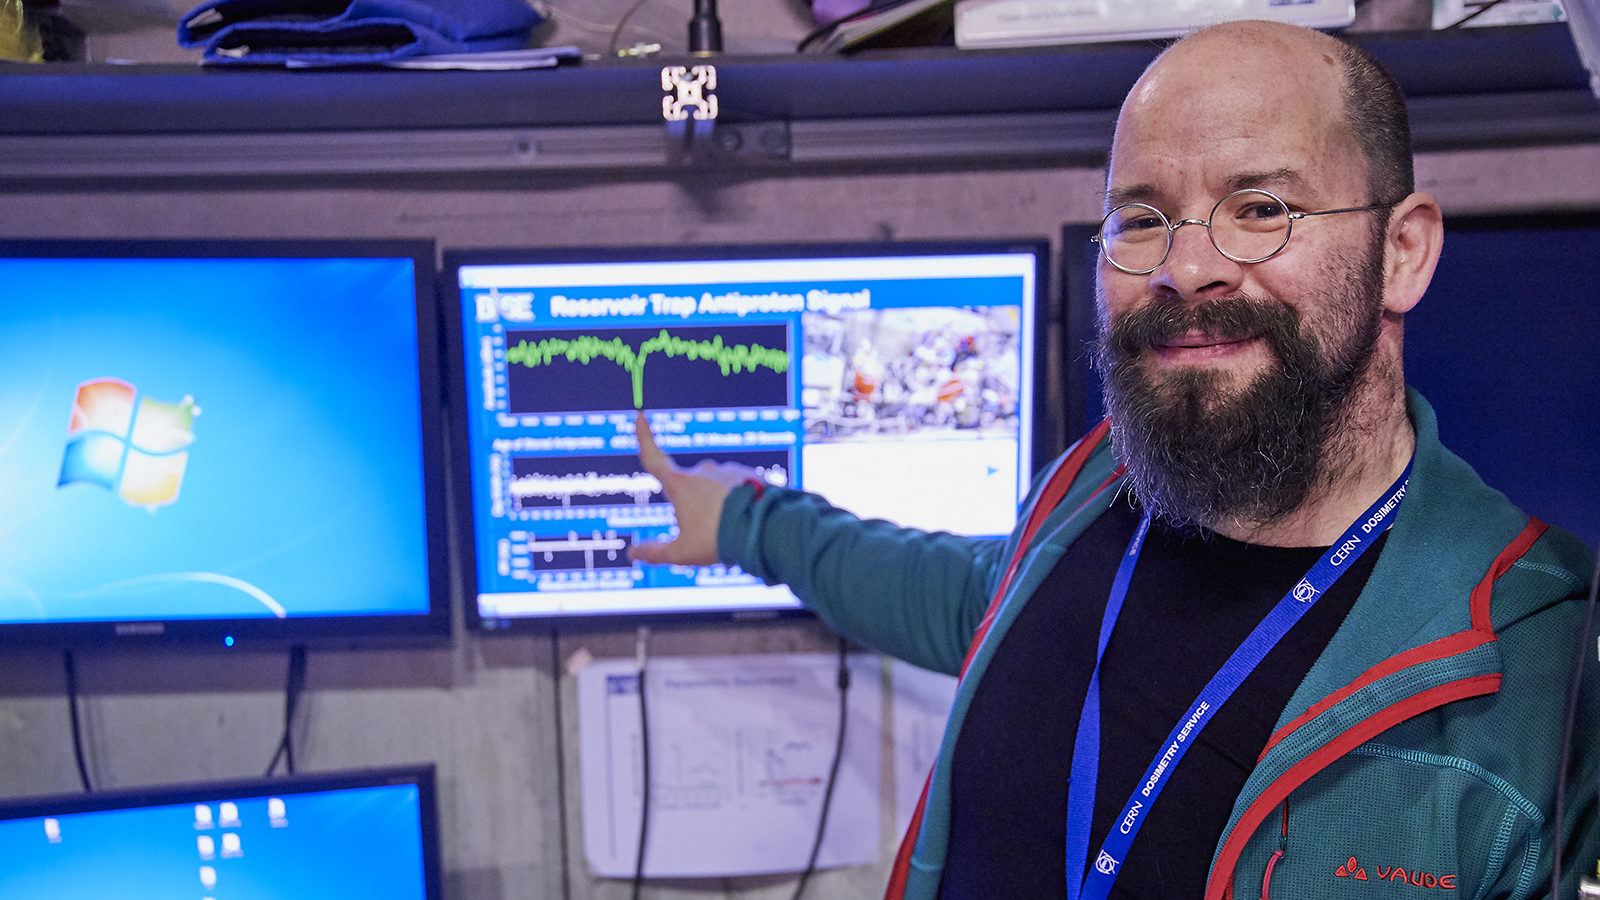 Stefan Ulmer, spokesperson of BASE collaboration, points at a screen with data about a 405-day-old antiproton